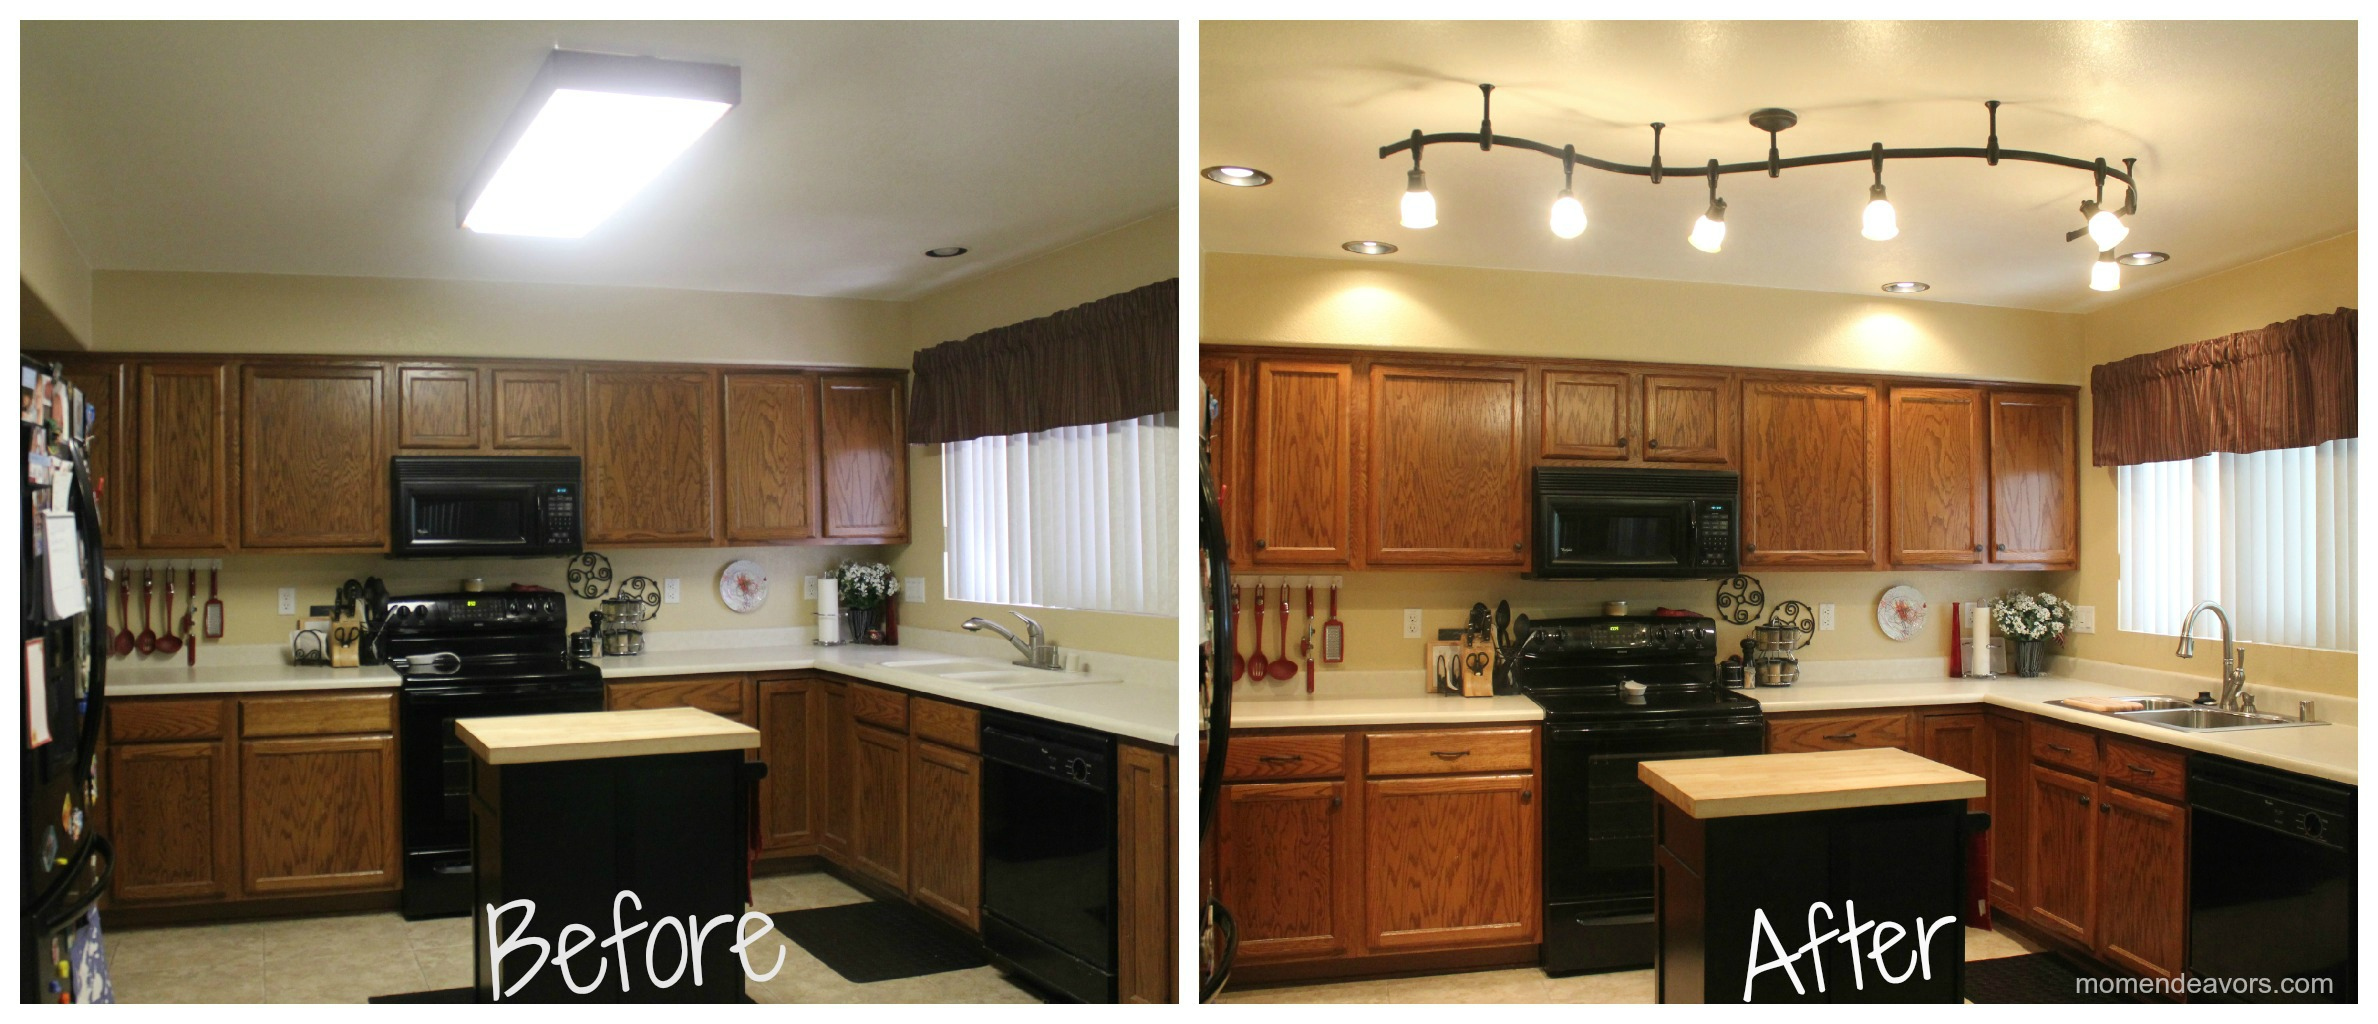 it - Kitchen Overhead Lighting Ideas